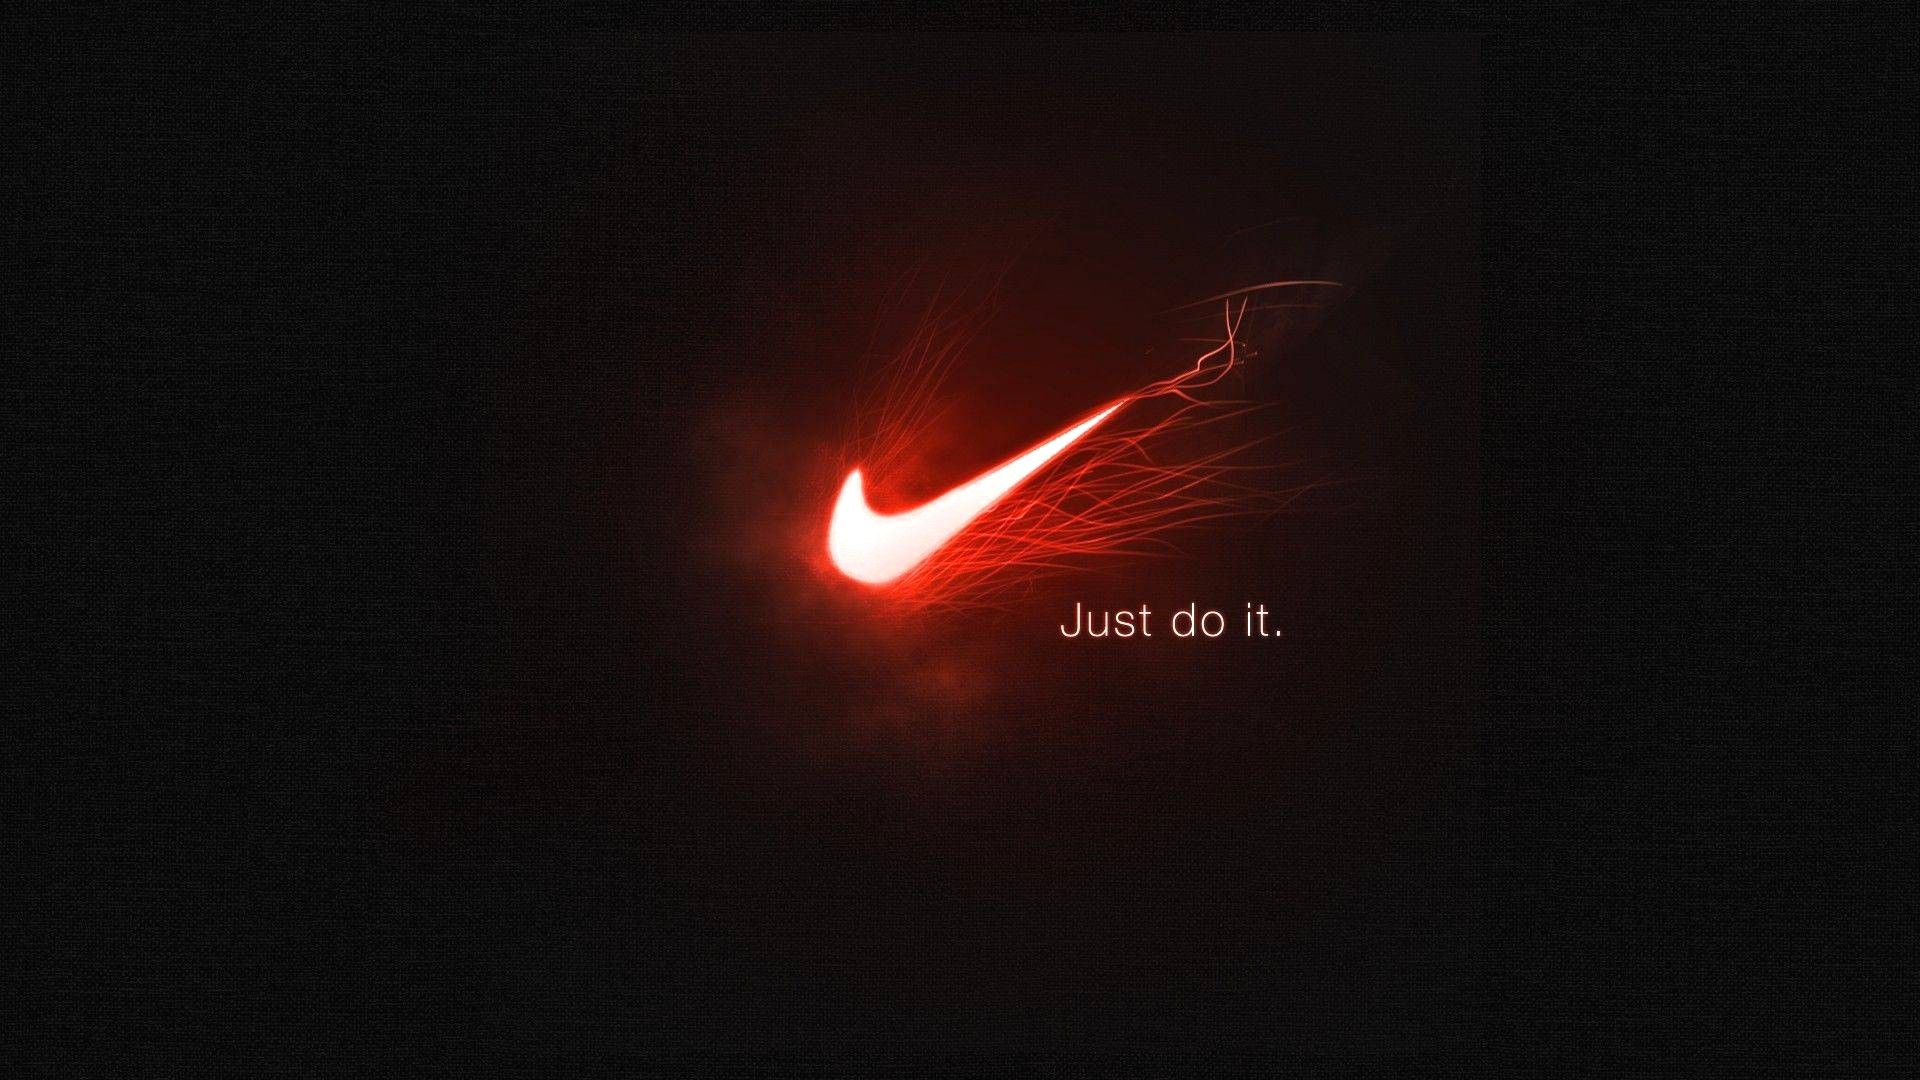 Nike Wallpapers Hd Full Just Do It 4k High Definition Windows Avec Nike 3d Wallpapers Wallpaper Cave Et Fo Papeis De Parede Para Iphone Imagens Da Nike Imagens